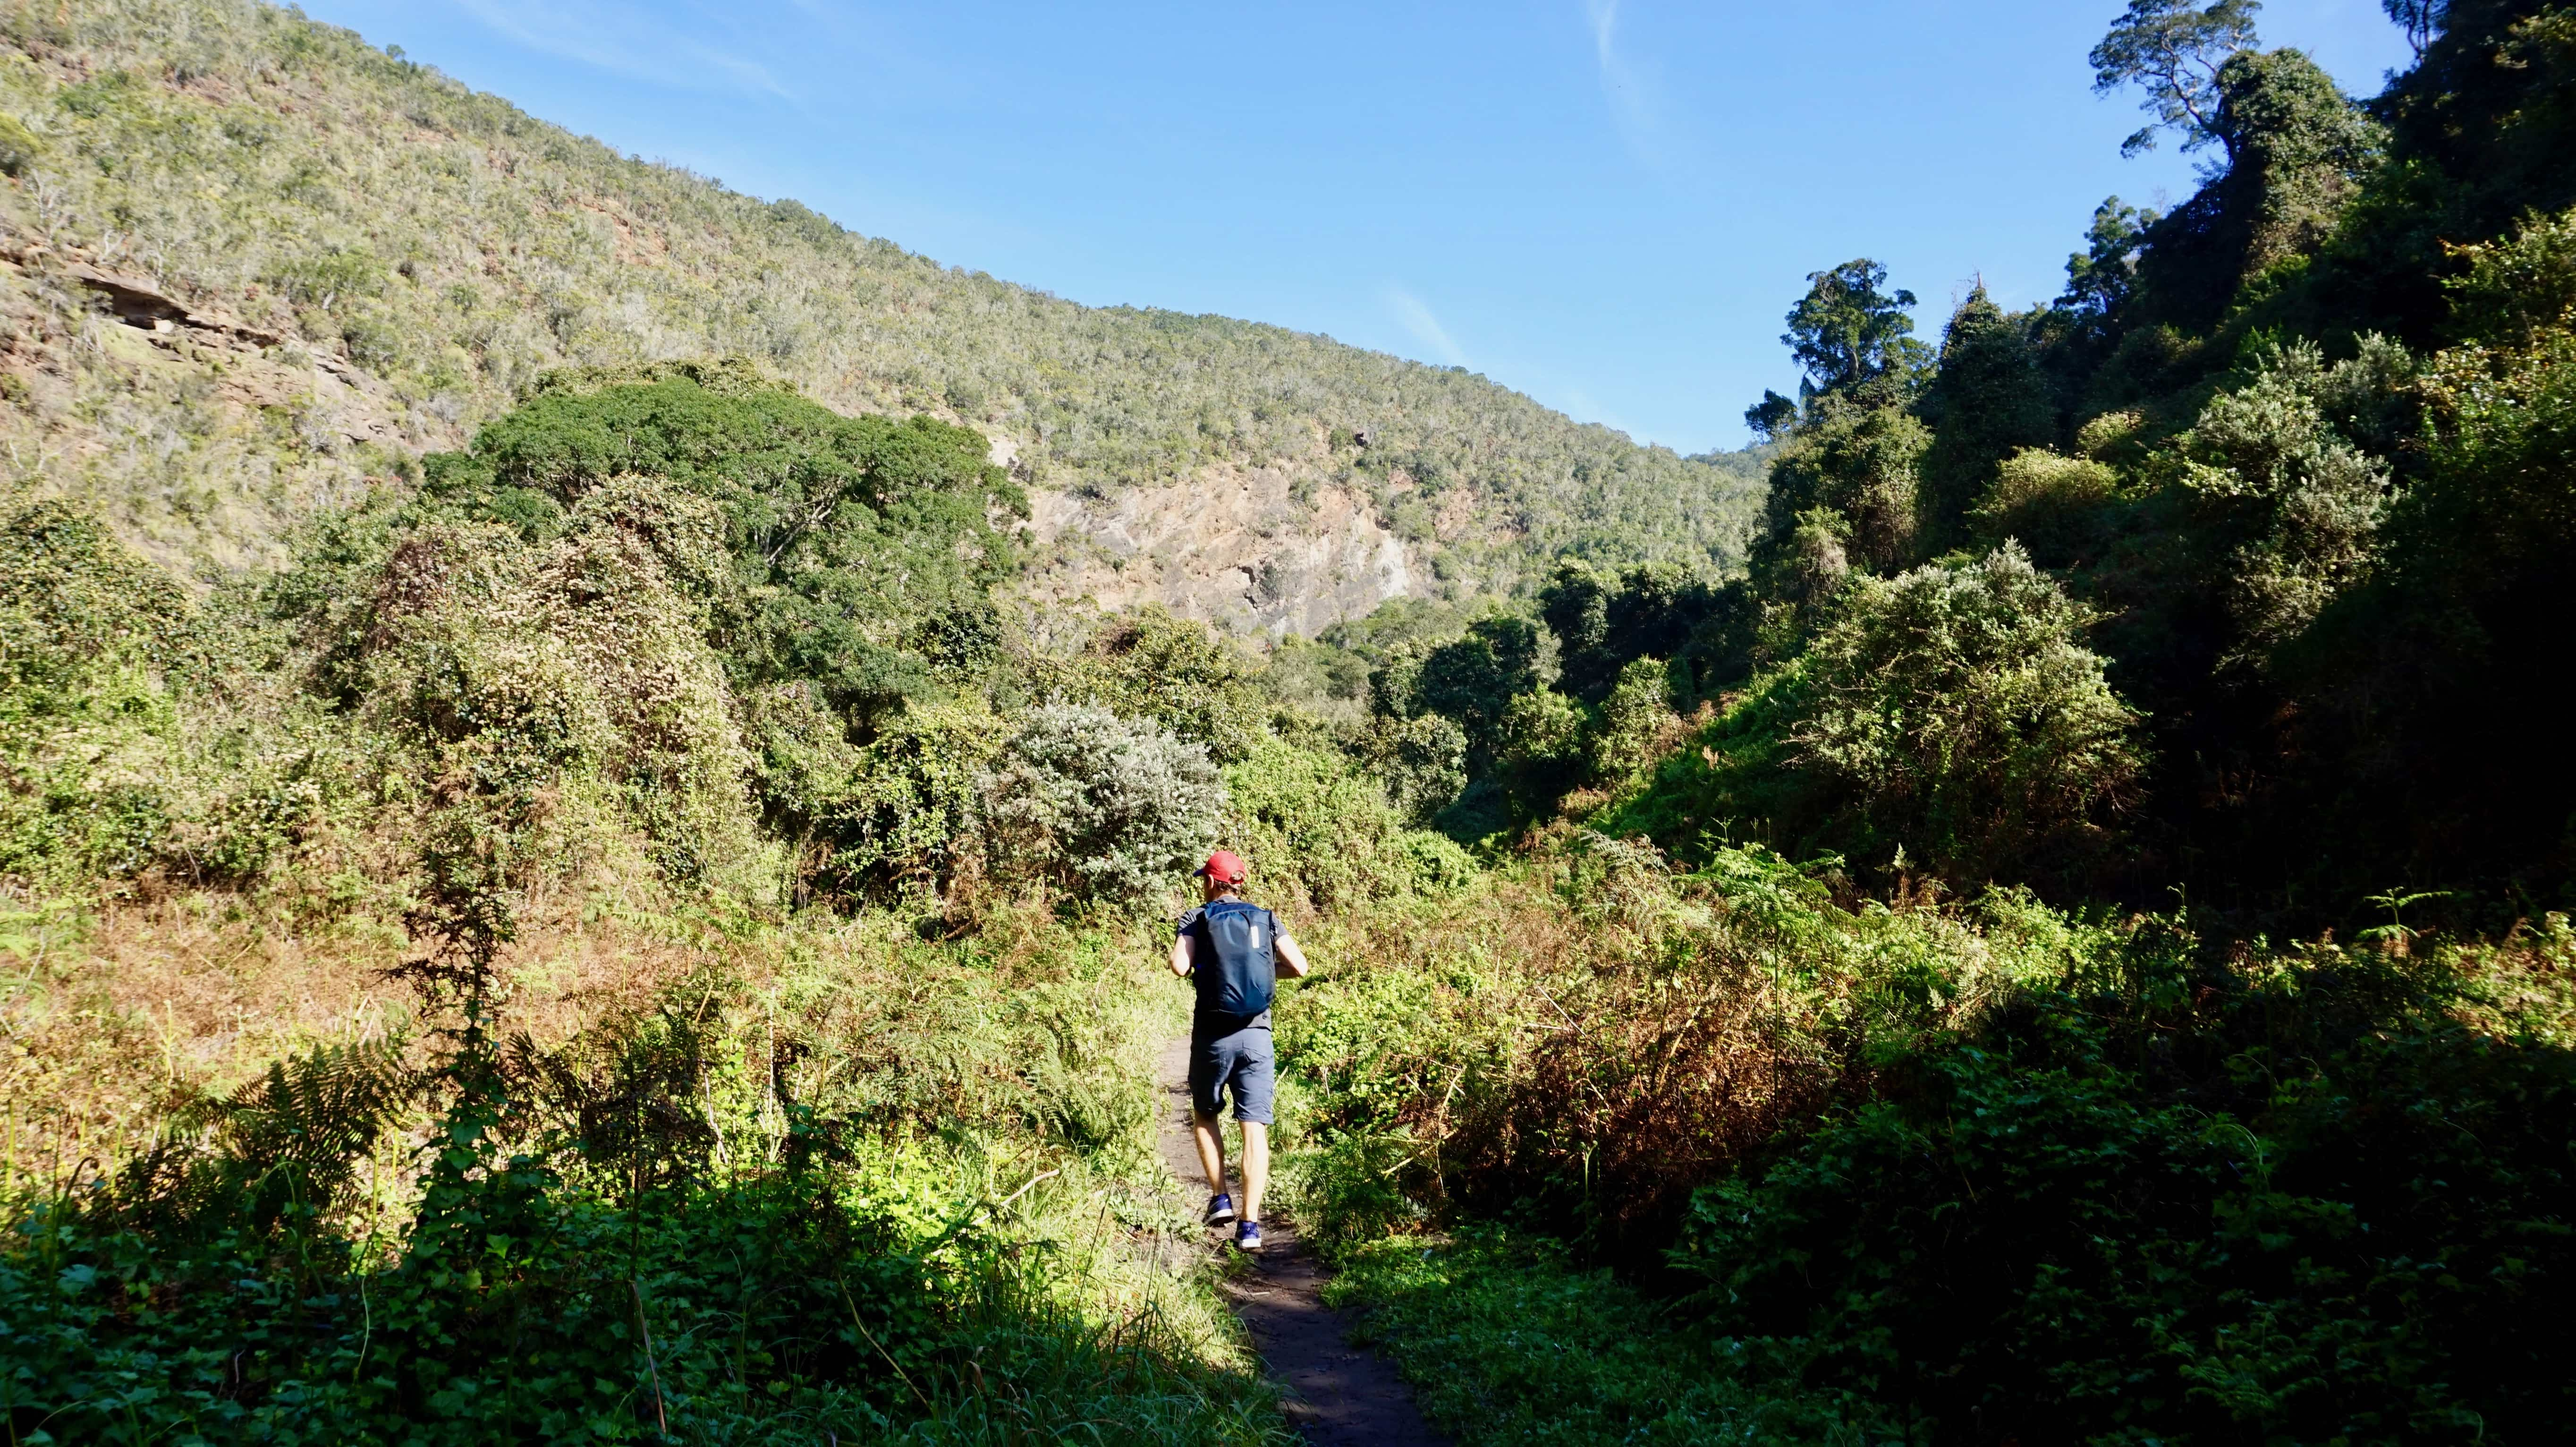 Andrew hiking in Garden Route National Park, South Africa